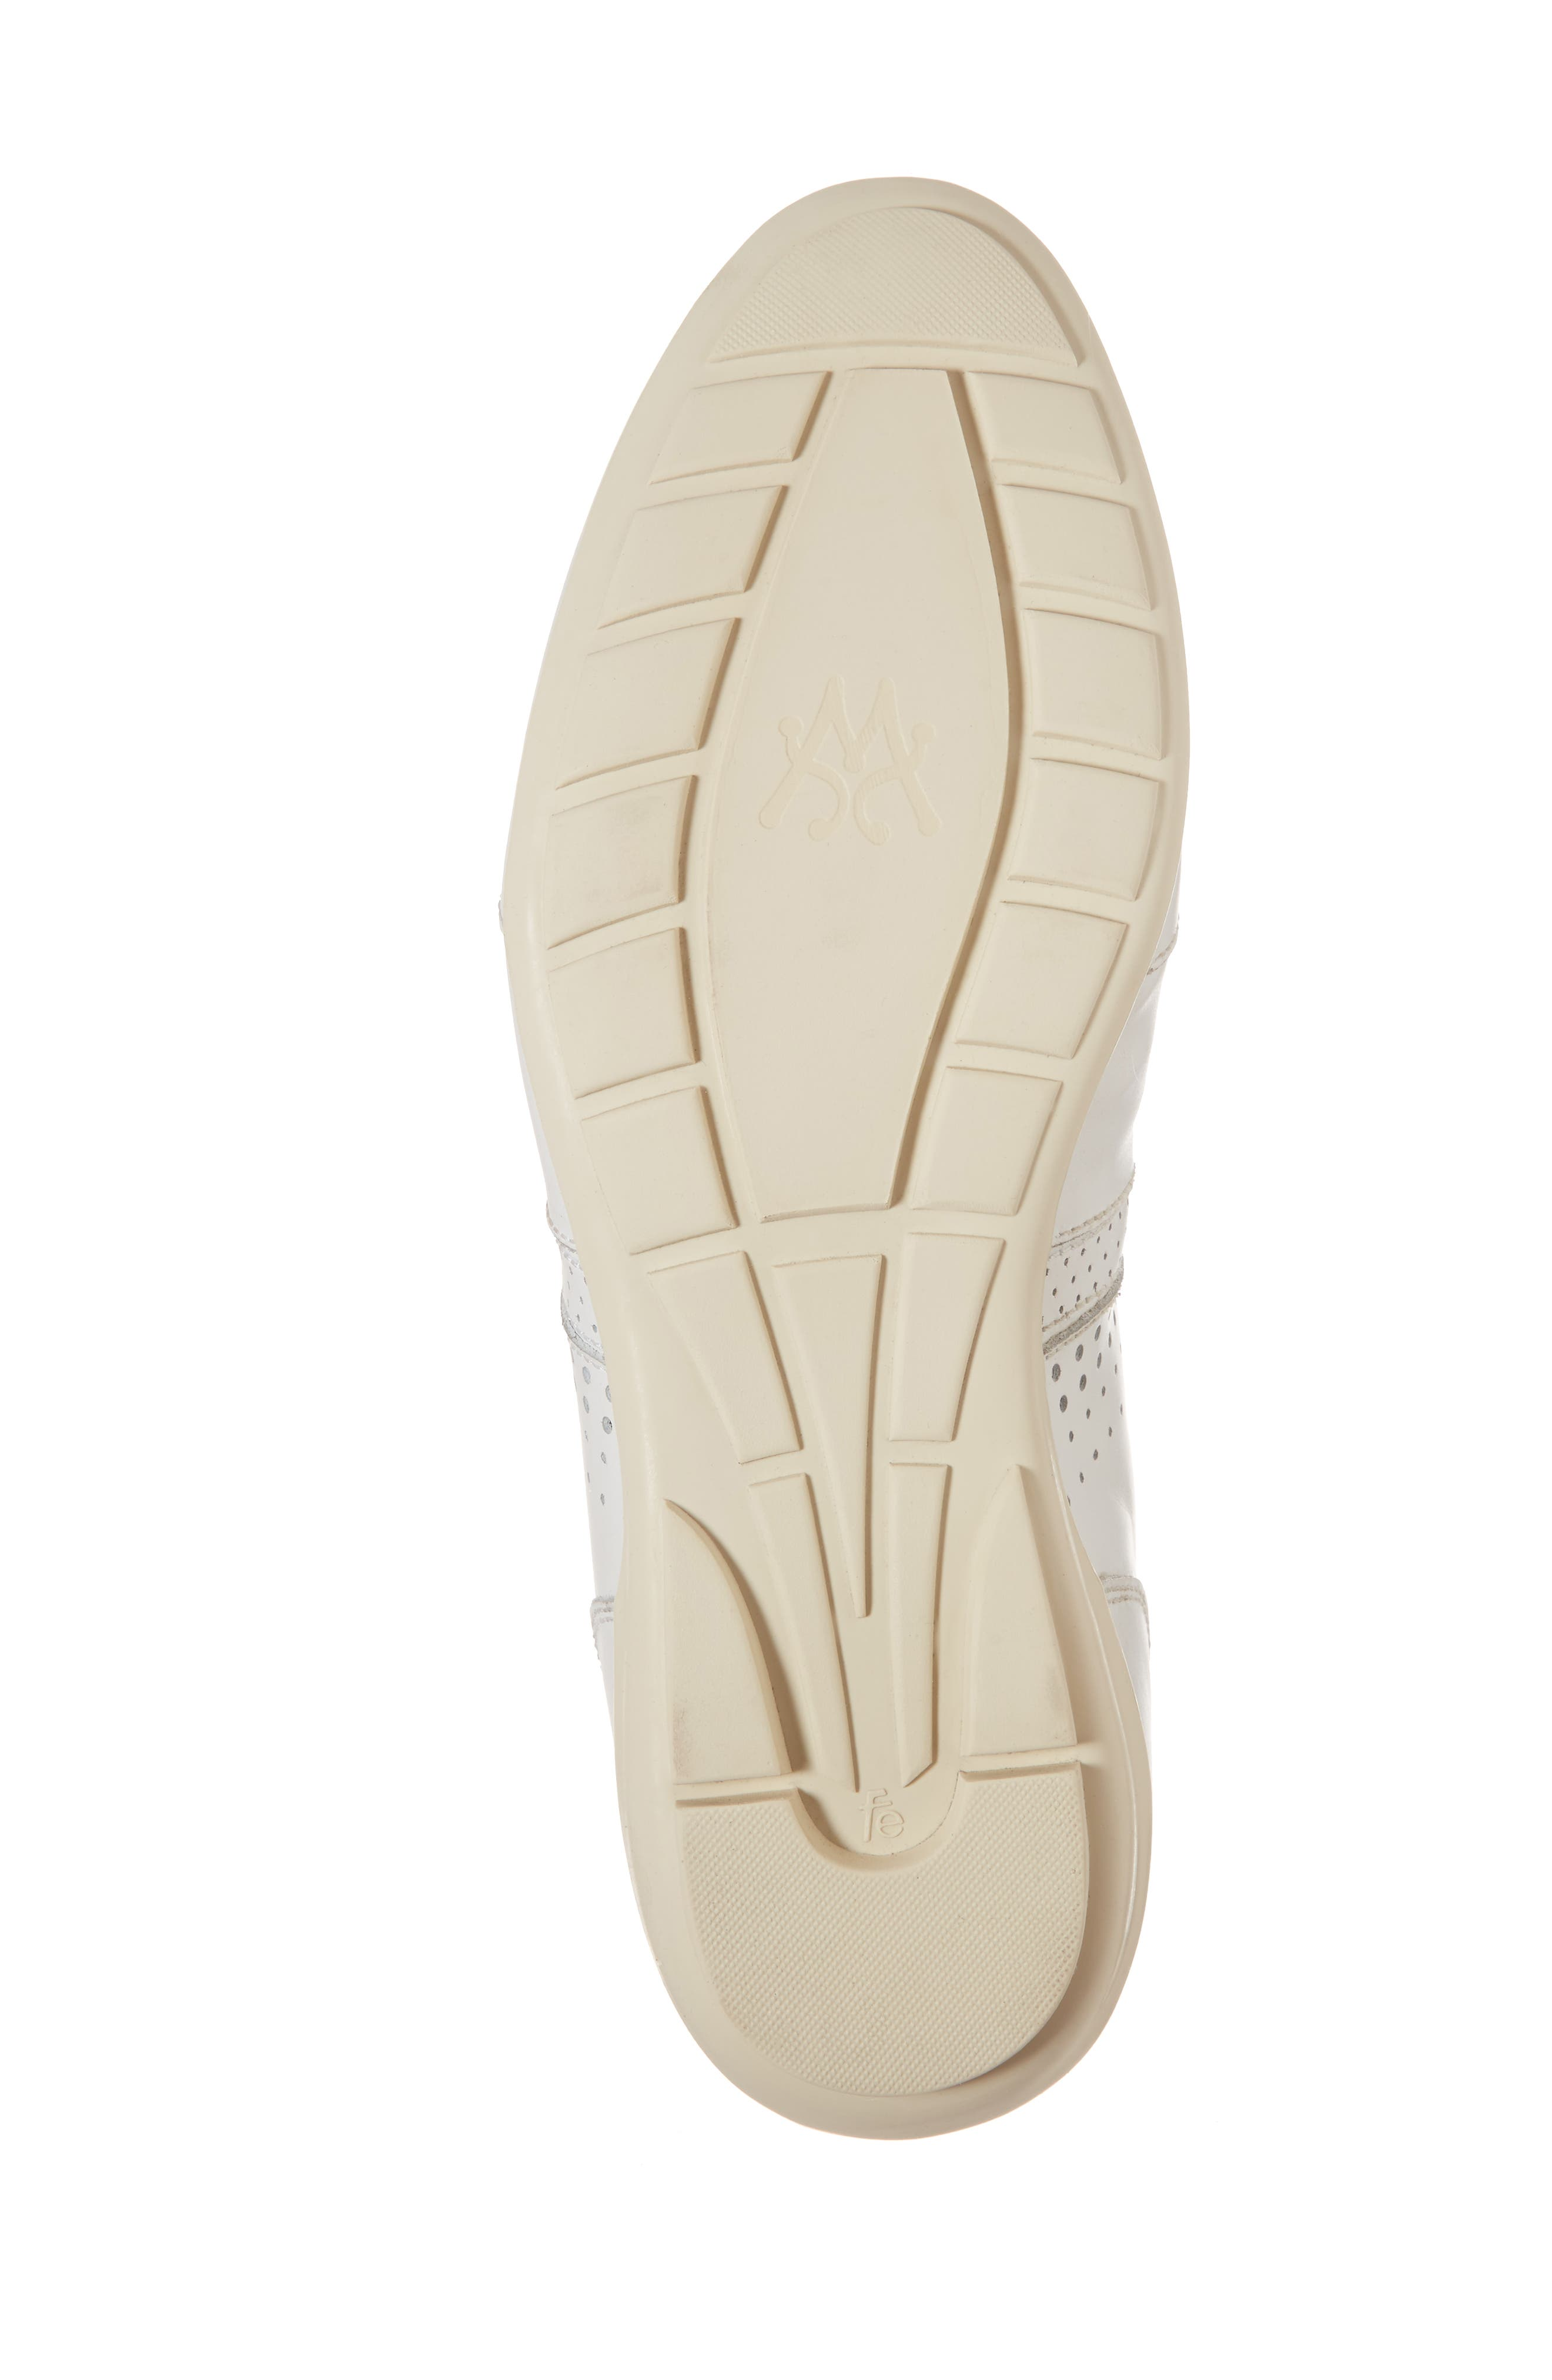 Lozano II Low Top Sneaker,                             Alternate thumbnail 6, color,                             White Leather